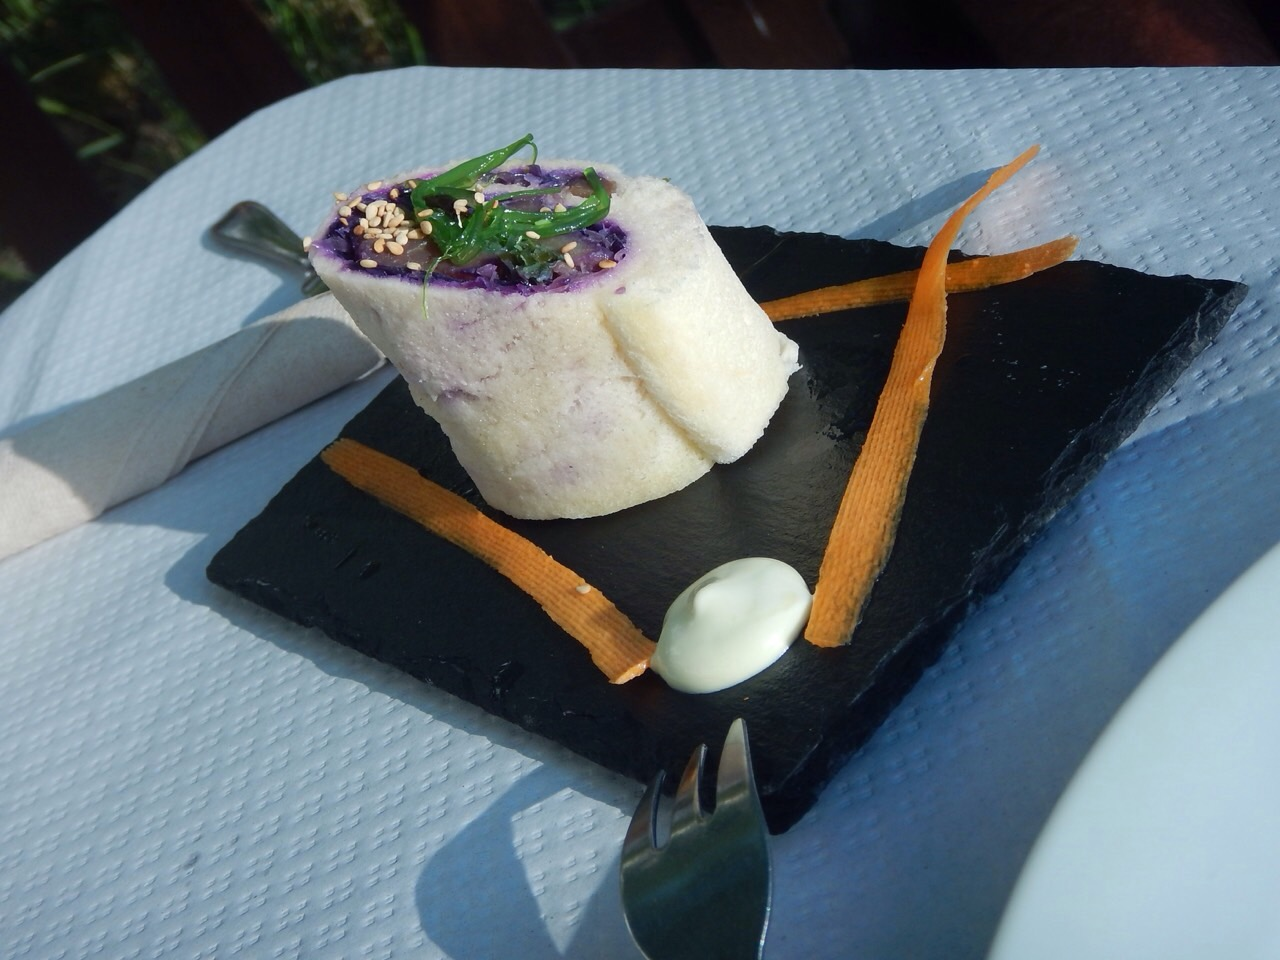 sushi roll with violet flavoured cabbage, tuna, Japanese seaweed, wasabi flavoured mayo. Flavours in this dish would be on a par with presentation of tuna cupcake dish.